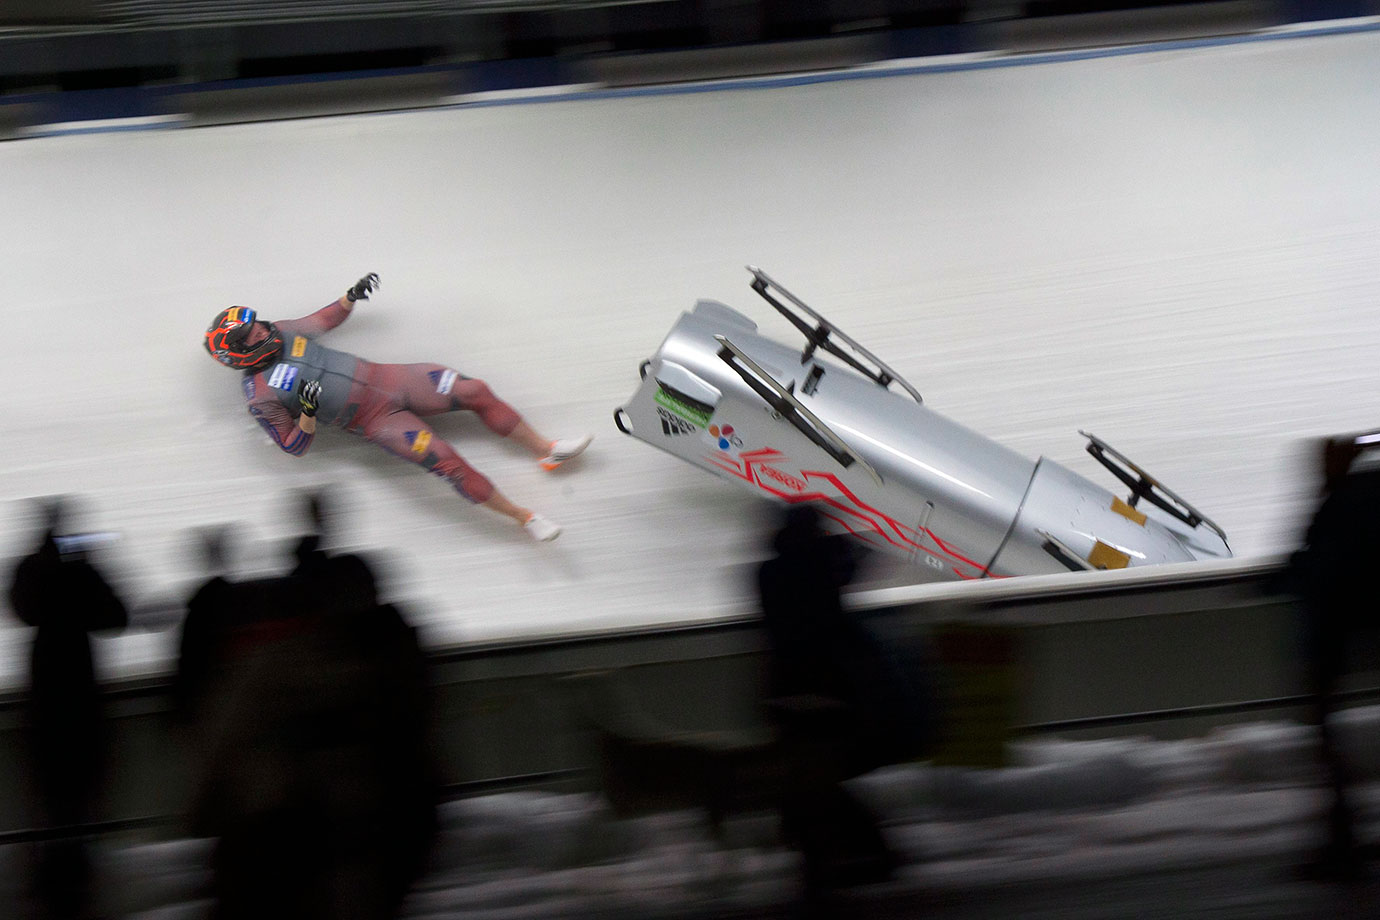 South Korea brakeman Kim Keun-bo falls out of his sled during the second run of the World Cup two-man bobsled in Whistler, Canada.